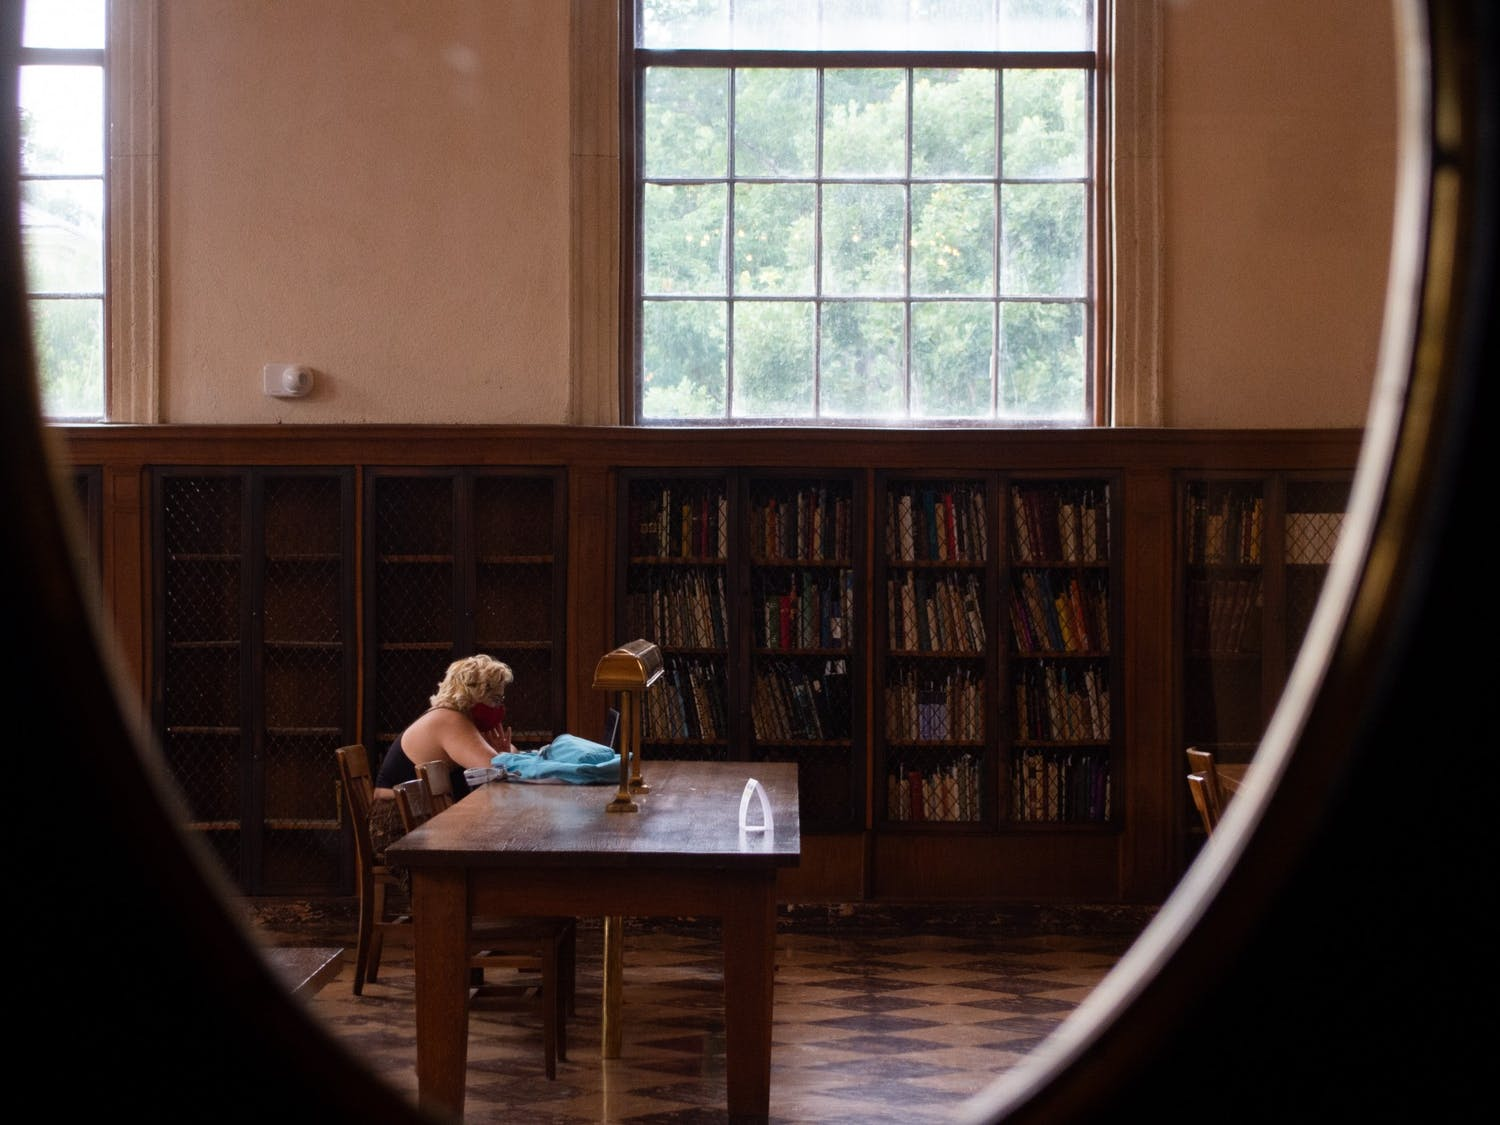 Students return to UNC-Chapel Hill's Libraries before the start of the fall semester. The system has changed its building hours, added self-service checkout stations, and it has reduced overdue book fees.